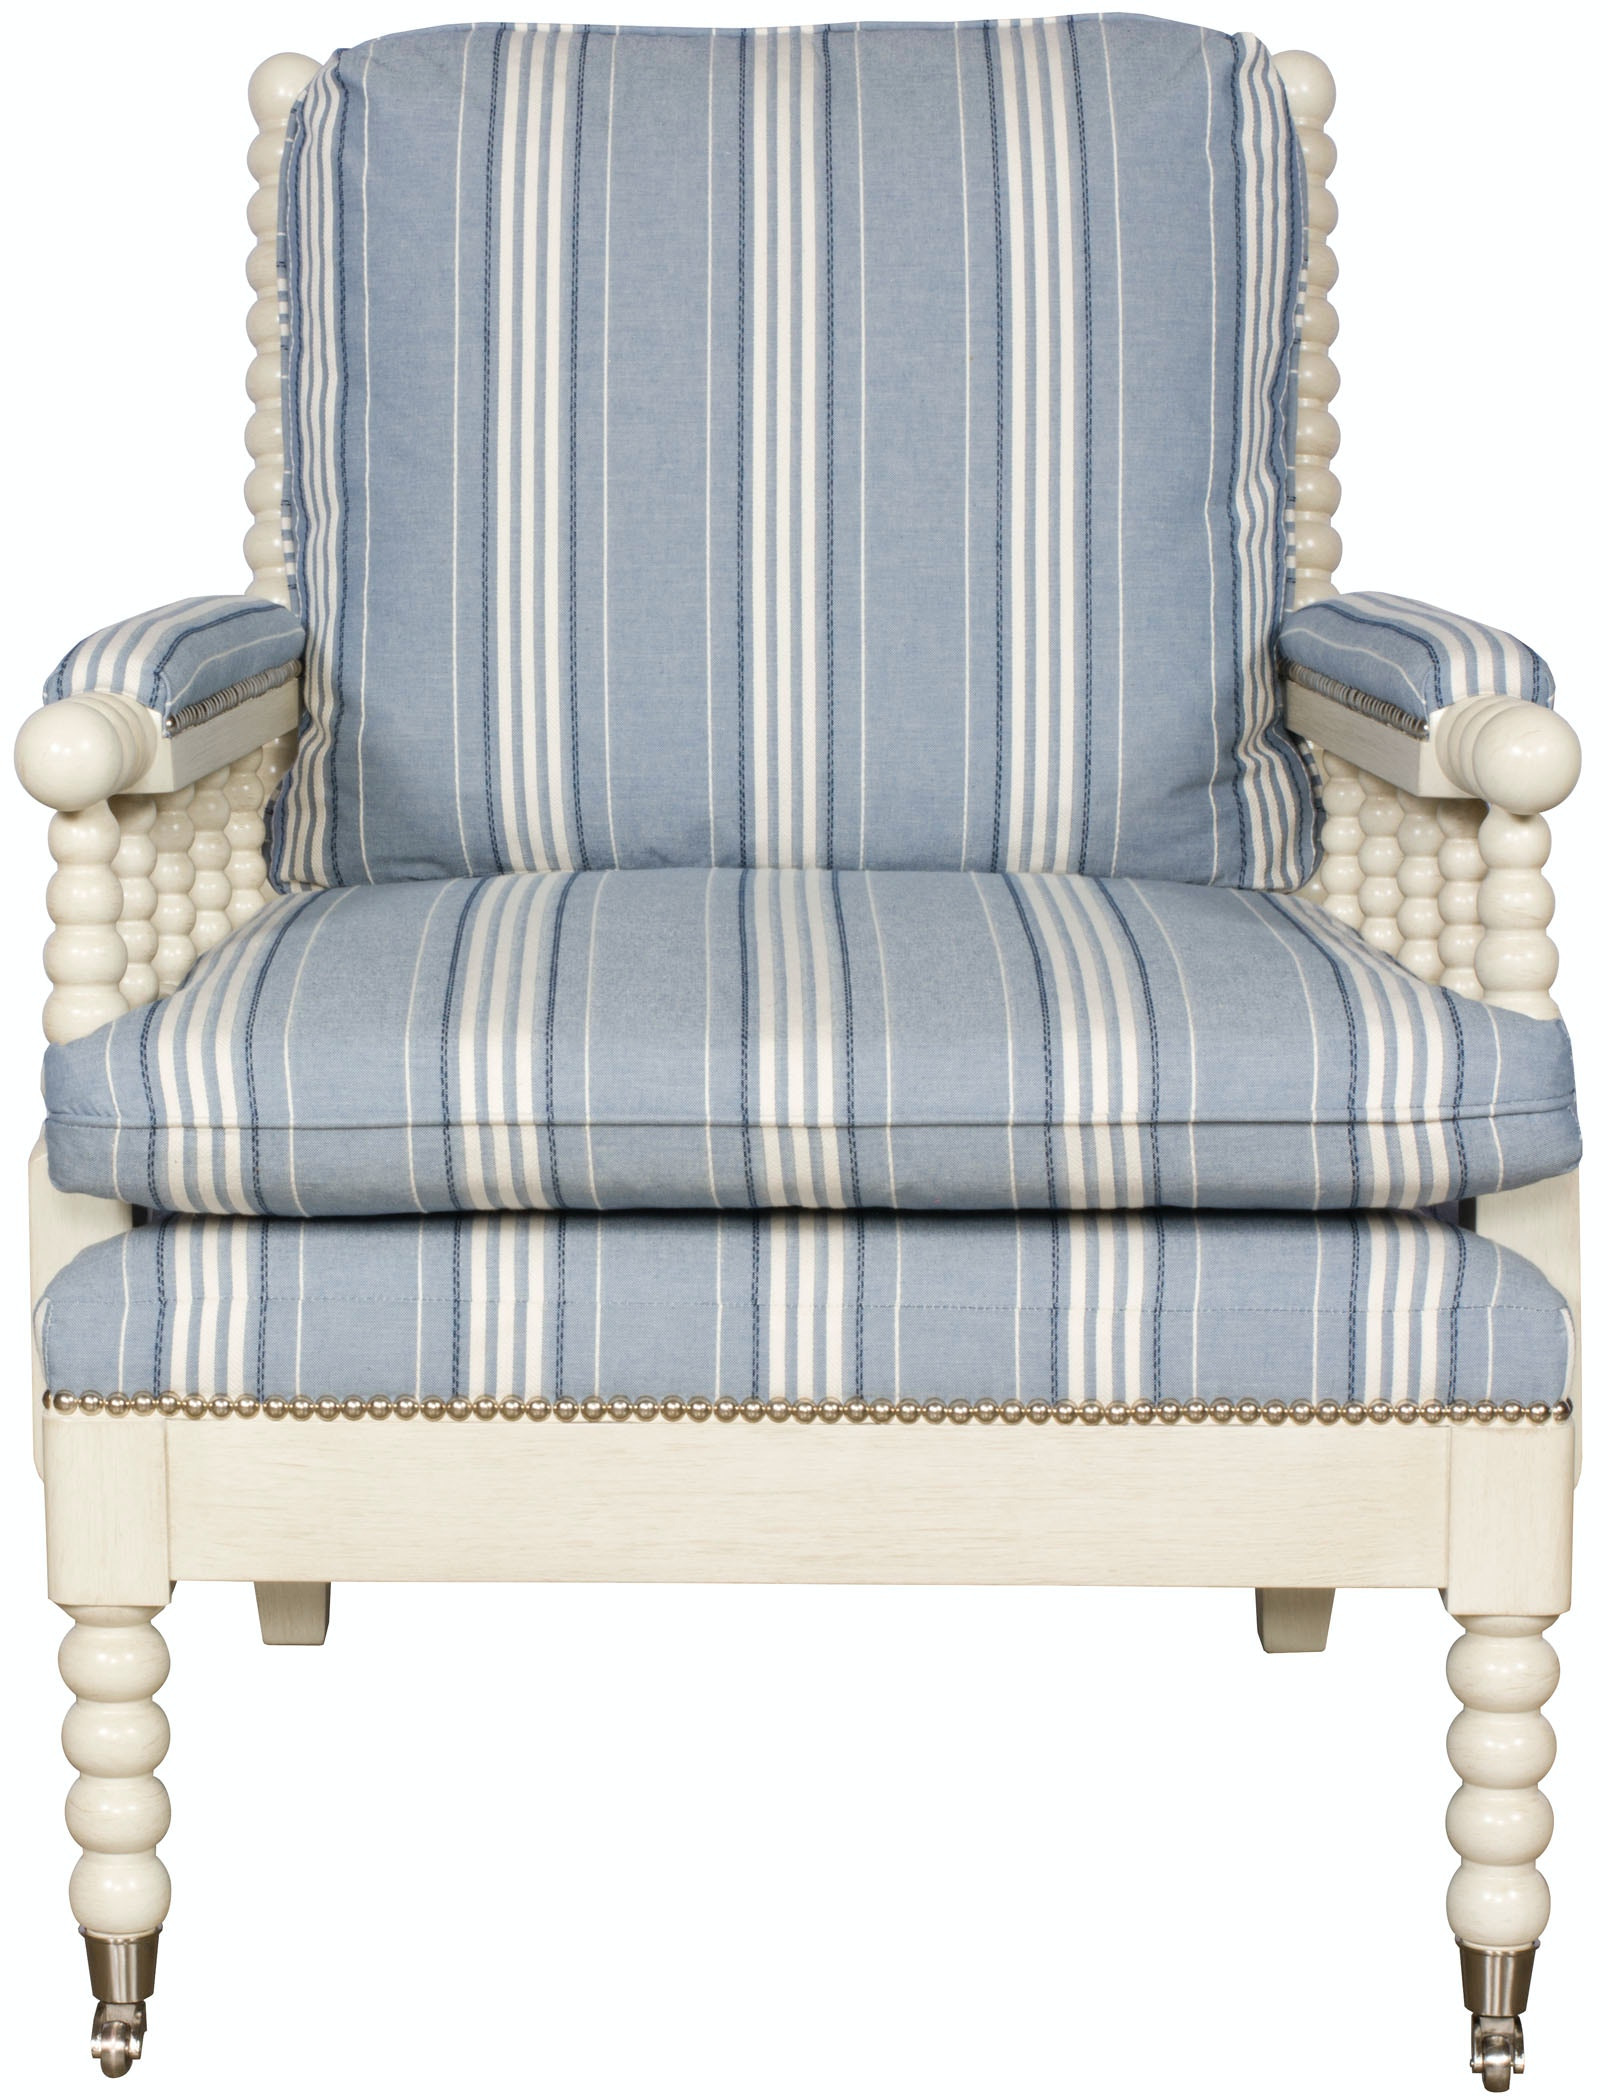 4502 CH. Bell Spool Chair